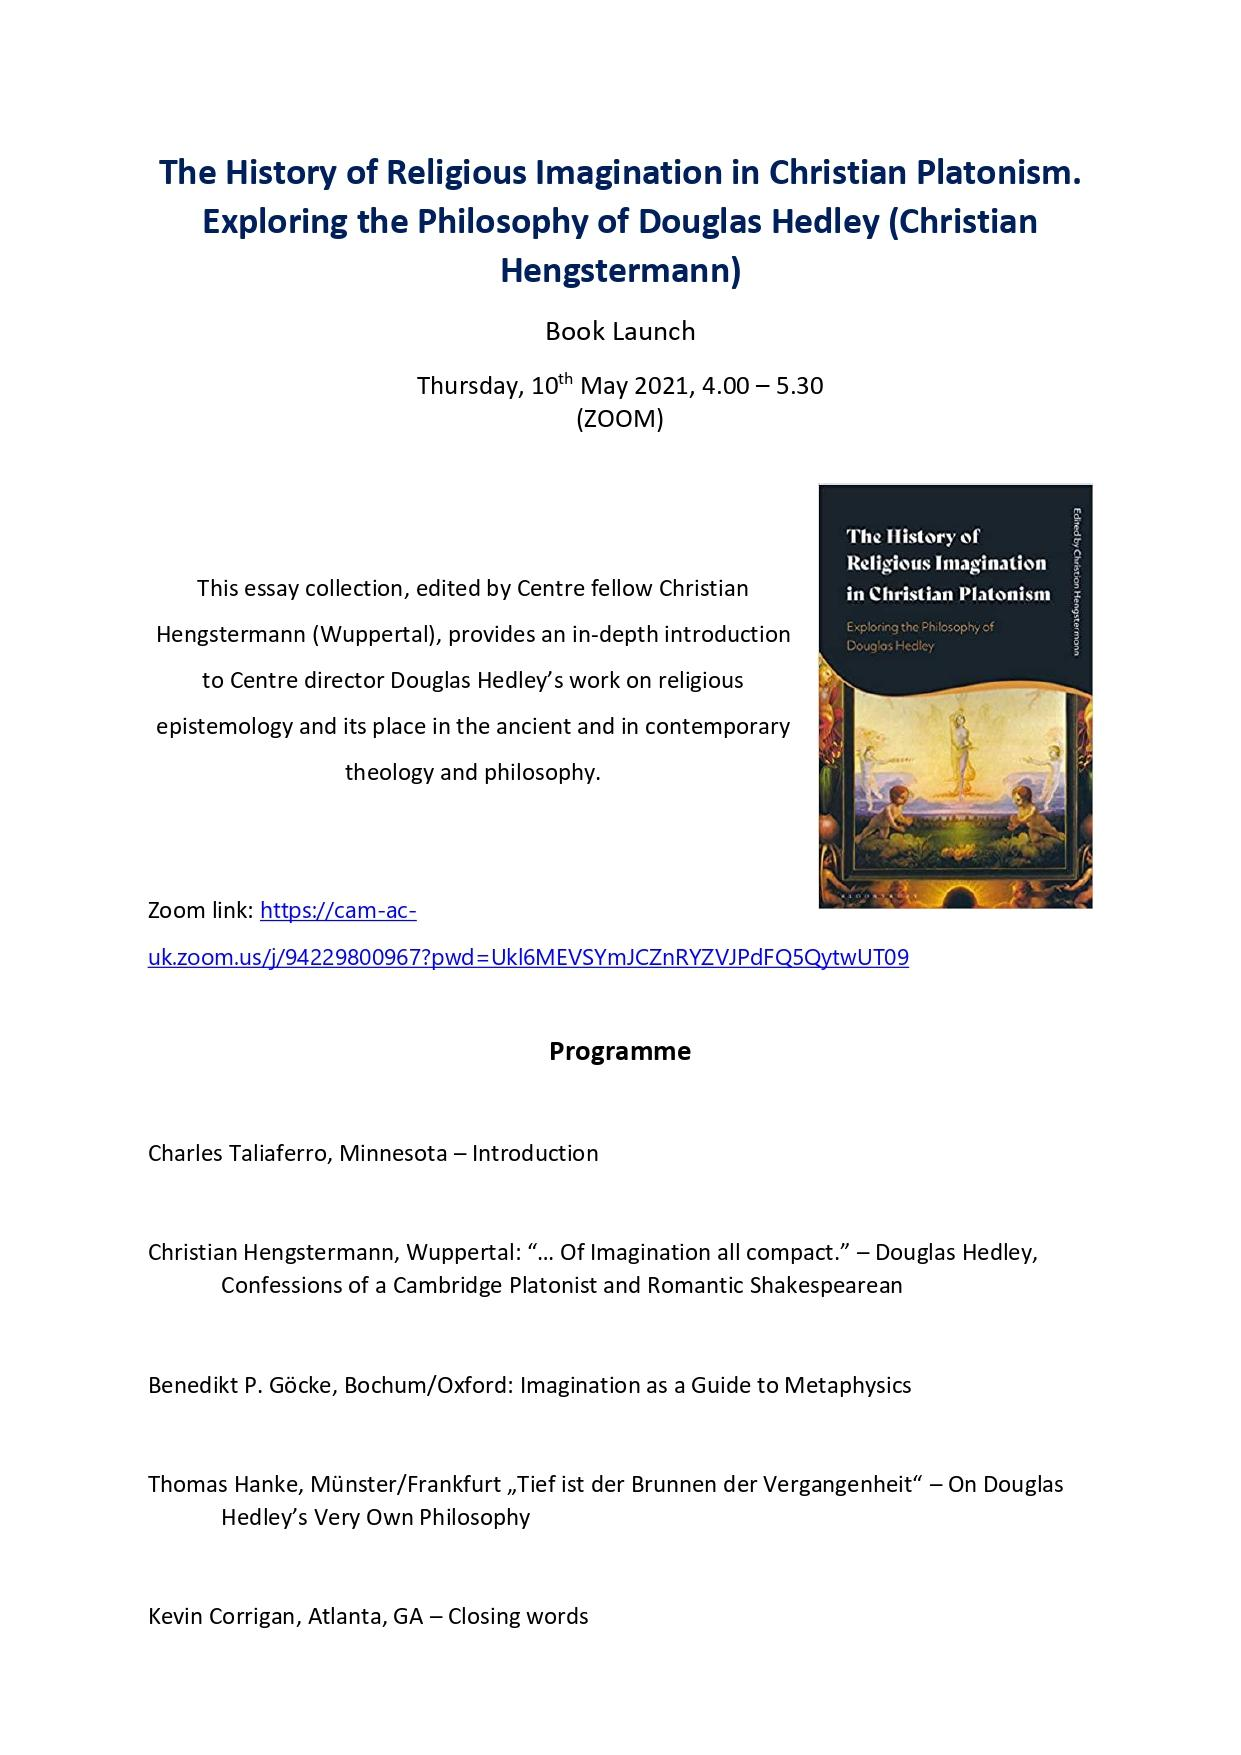 Book Launch | The History of Religious Imagination in Christian Platonism. Exploring the Philosophy of Douglas Hedley